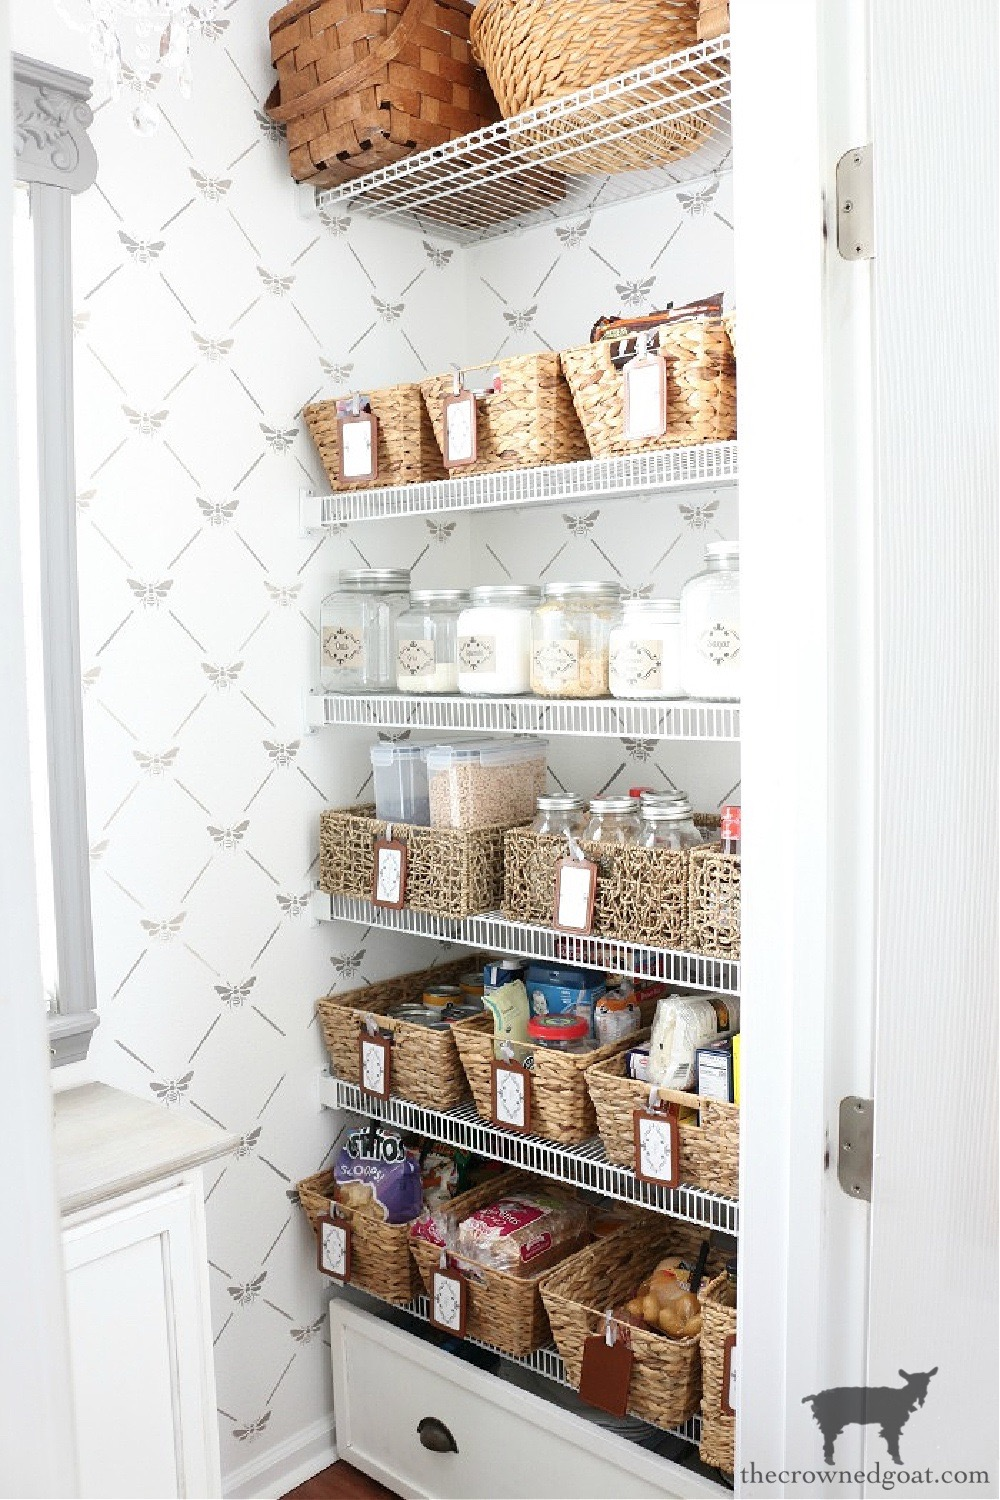 11 Ways to Clean, Maintain, and Organize Your Kitchen-Pantry Organization-The Crowned Goat